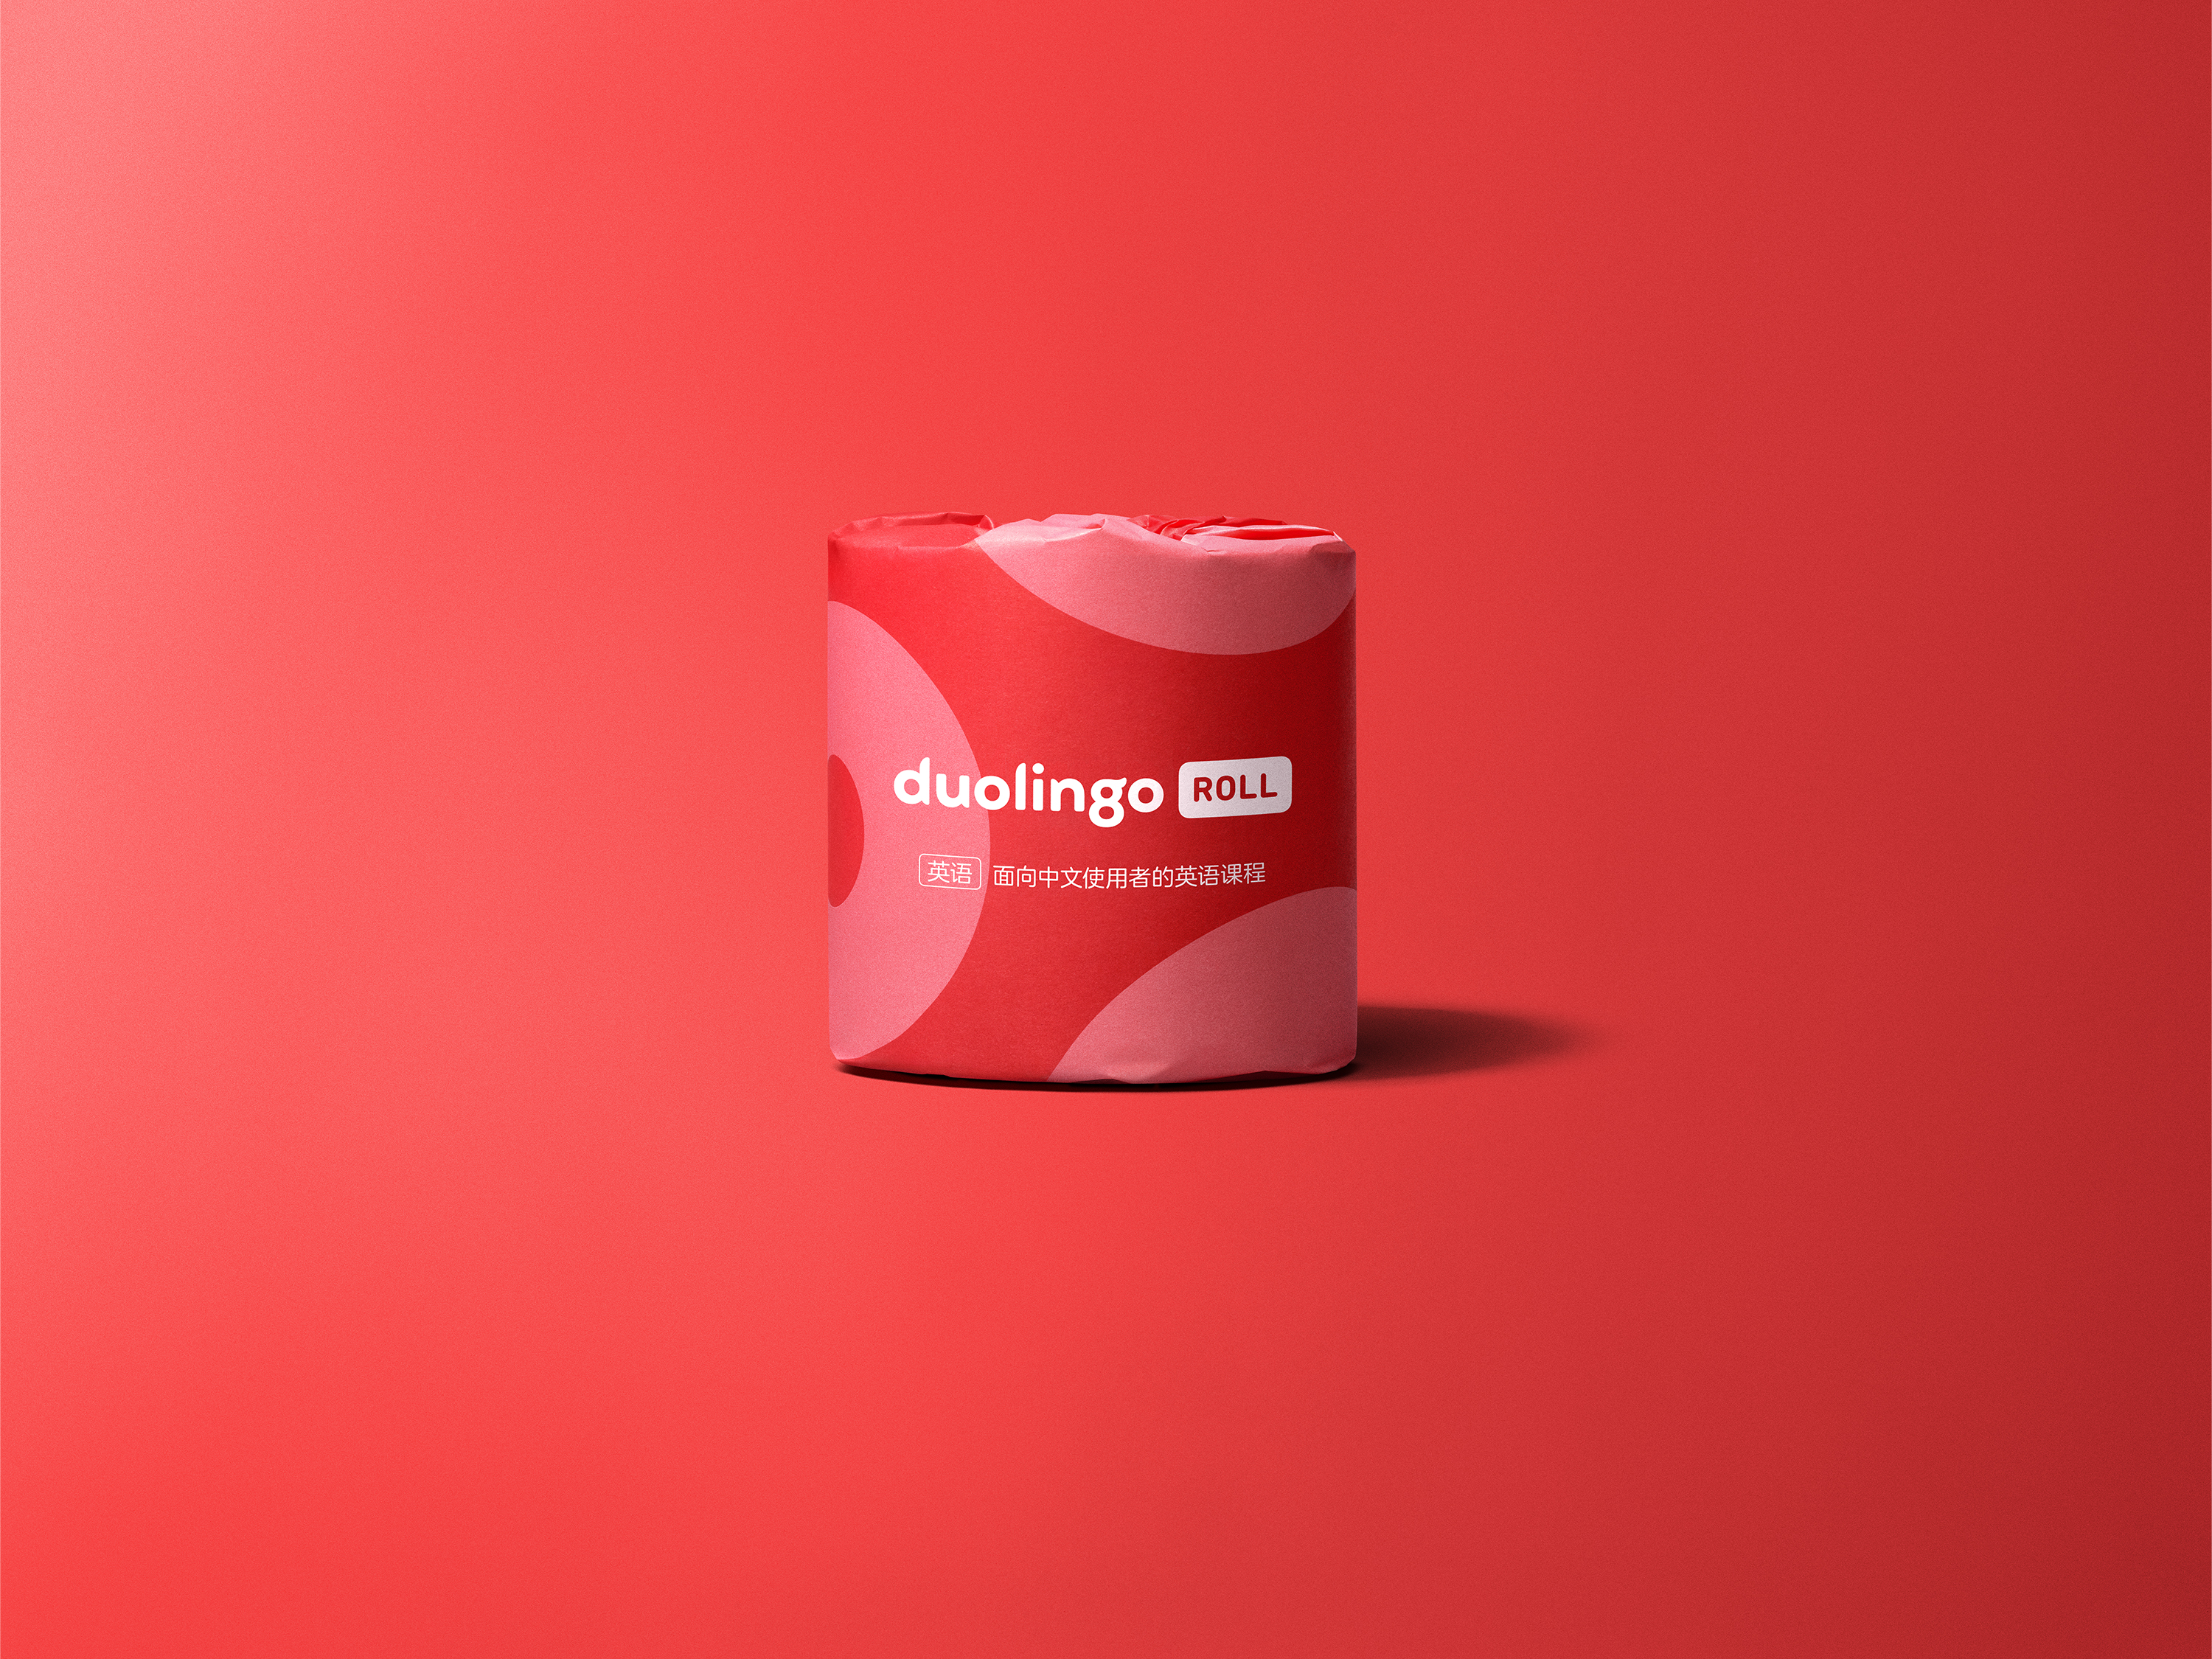 Duolingo Roll in-hand for Chinese speakers